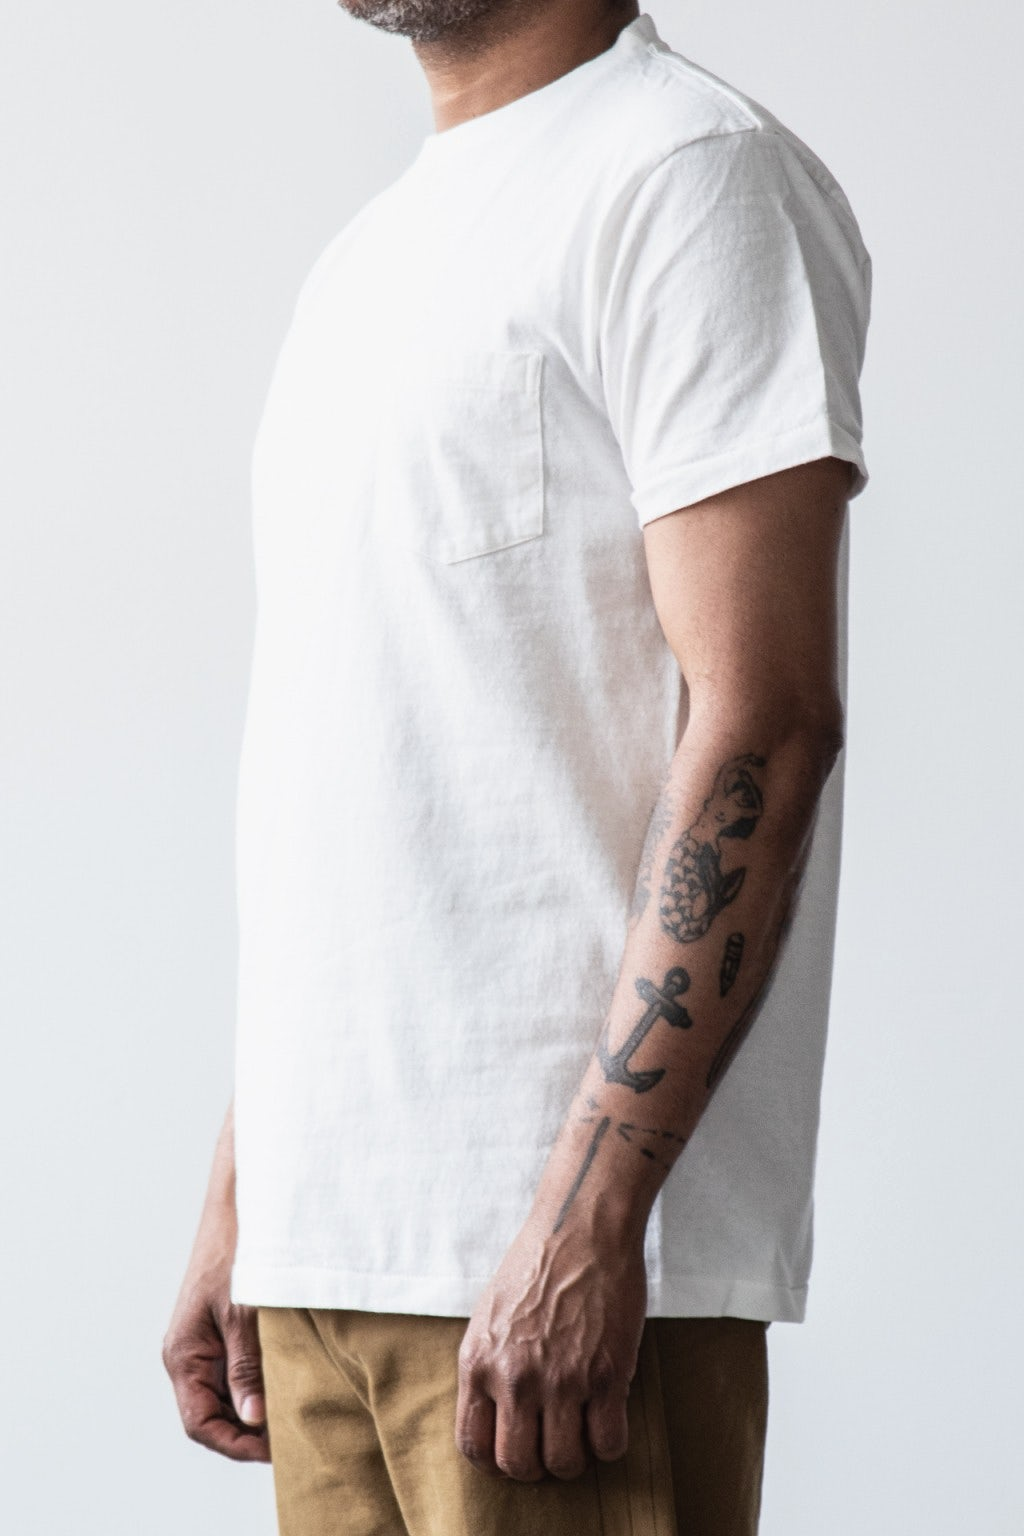 Velva Sheen Two Pack Pocket T-Shirts White & Heather Grey